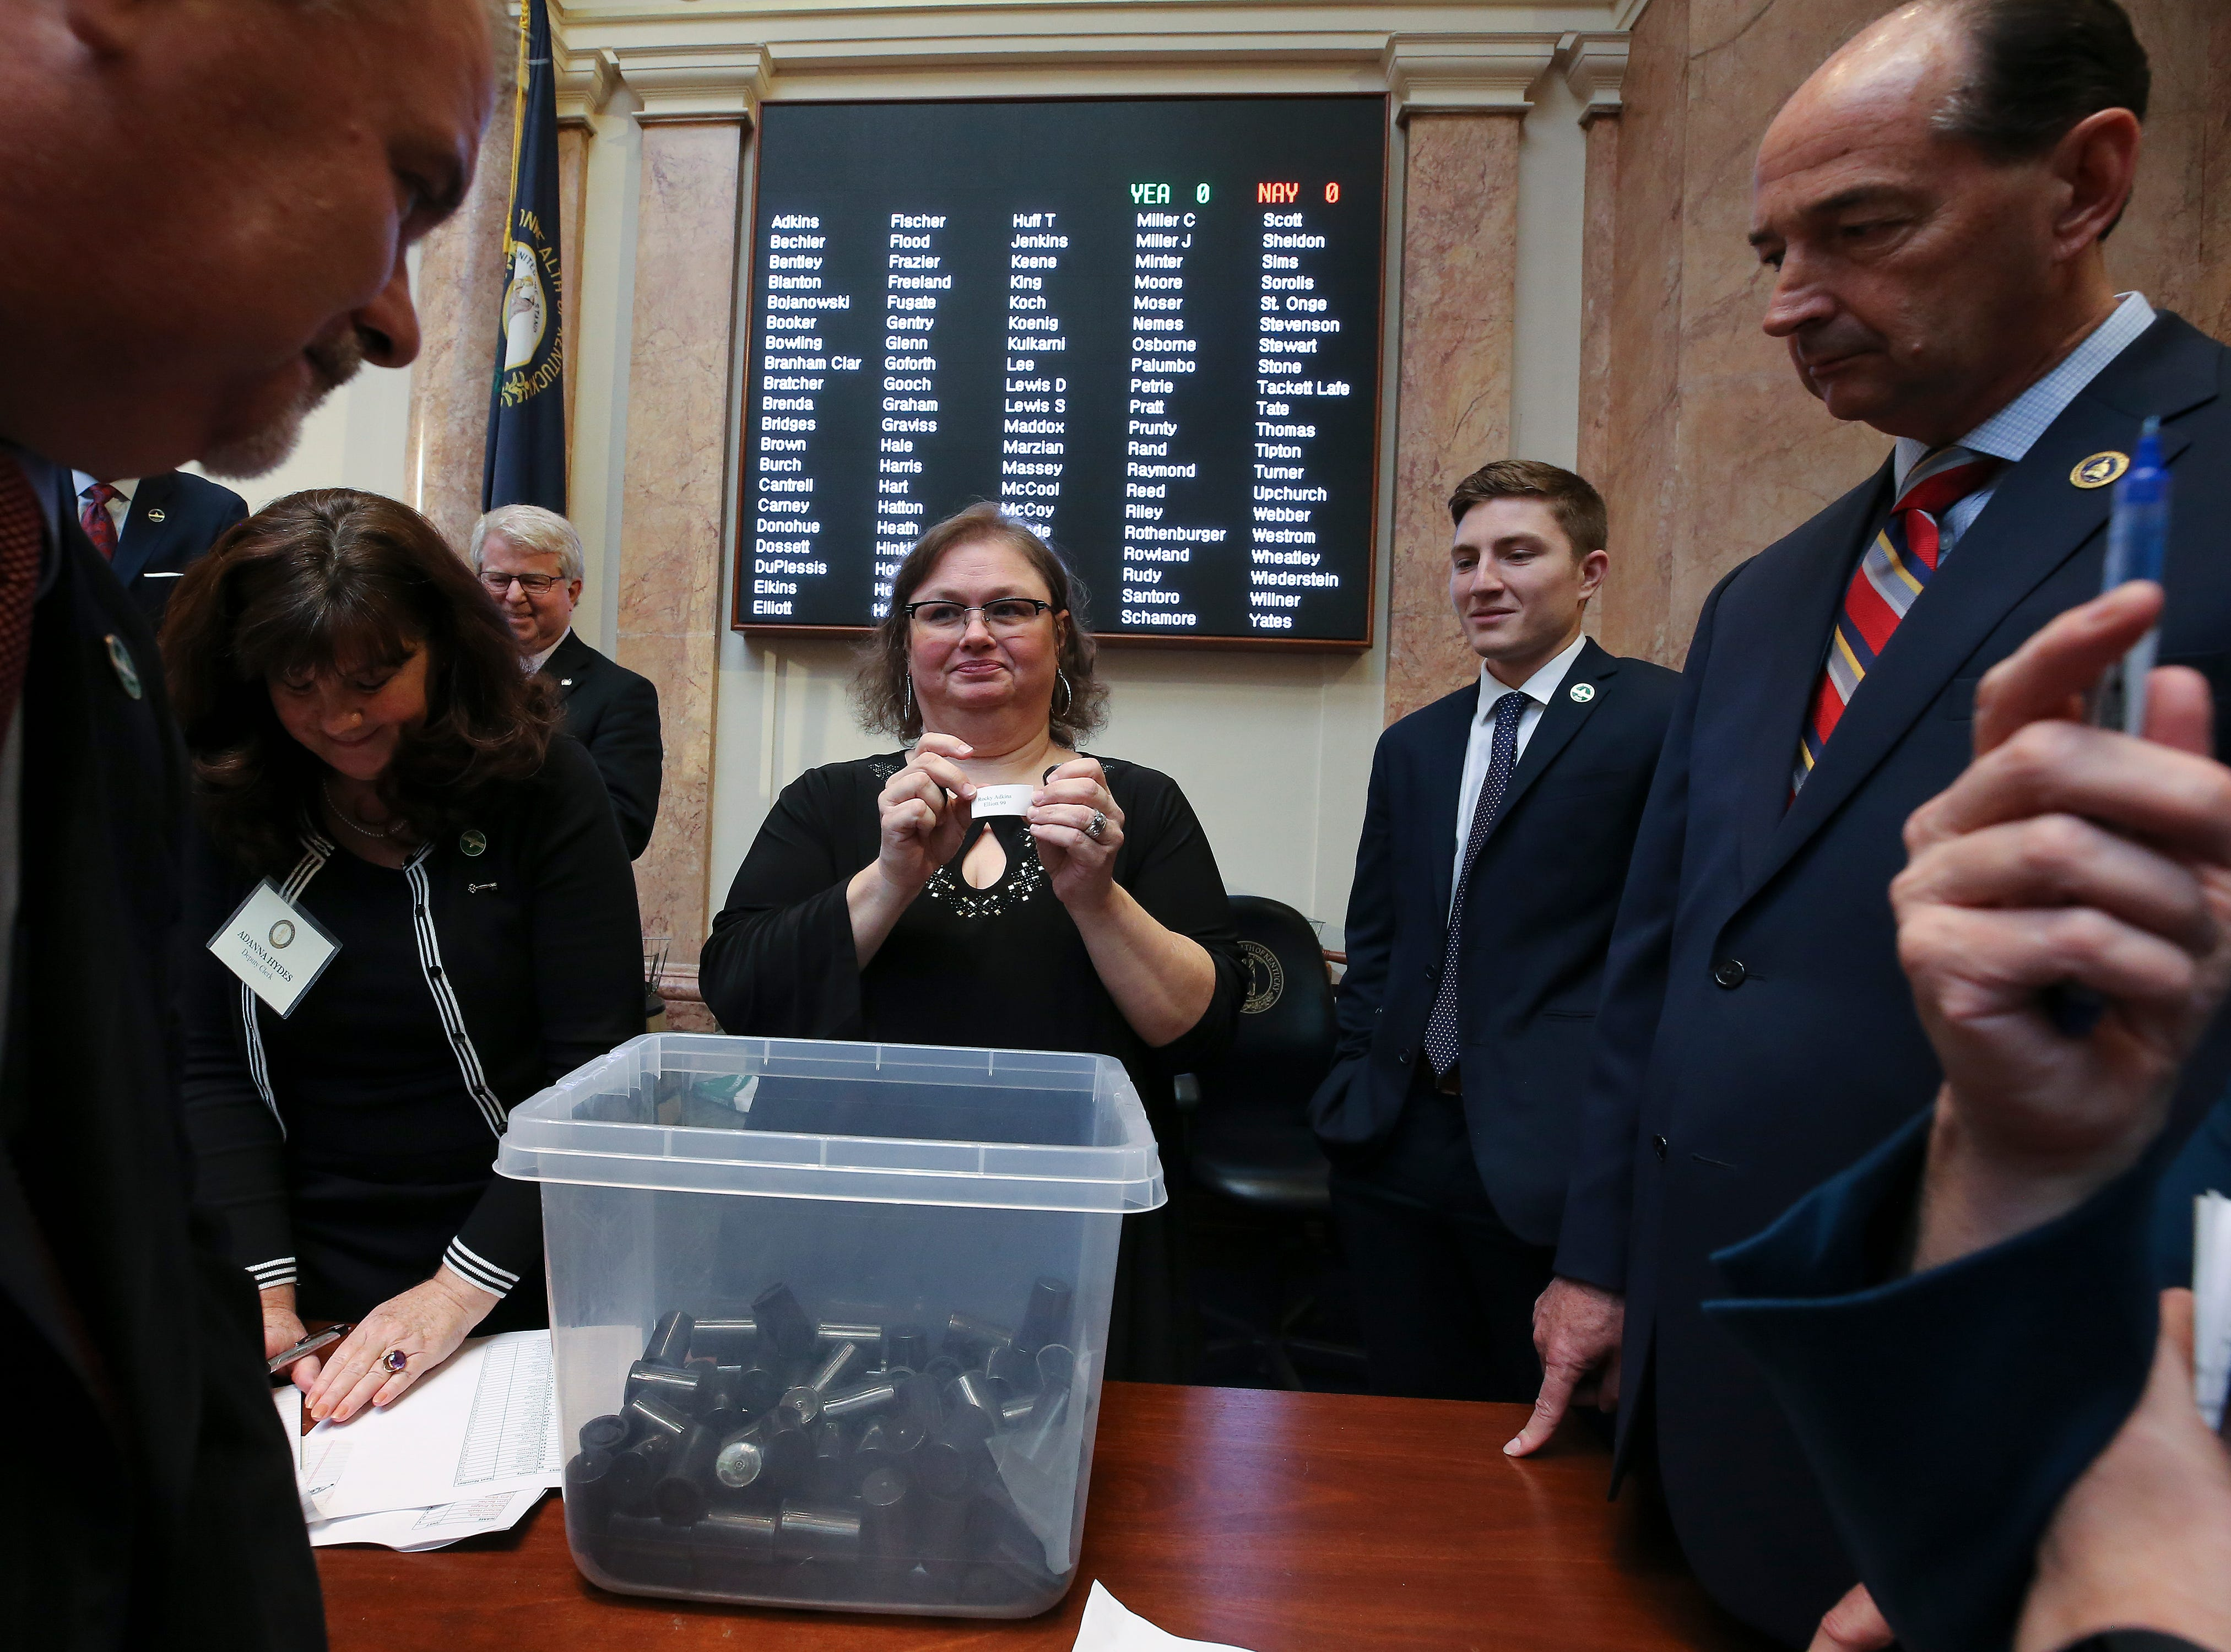 House clerk Melissa Bybee-Fields, center, randomly pulled a name from a bin of House members to create a committee on committees to decide how to proceed on ruling of the disputed House seat for Jim Glenn who was elected to the House seat for Owensboro by one vote.  Coincidentally she pulled Rep. Rocky Adkins name during this selection as he watched the process on the right.  Rep. Bam Carney, left, was also selected.Jan. 8, 2019